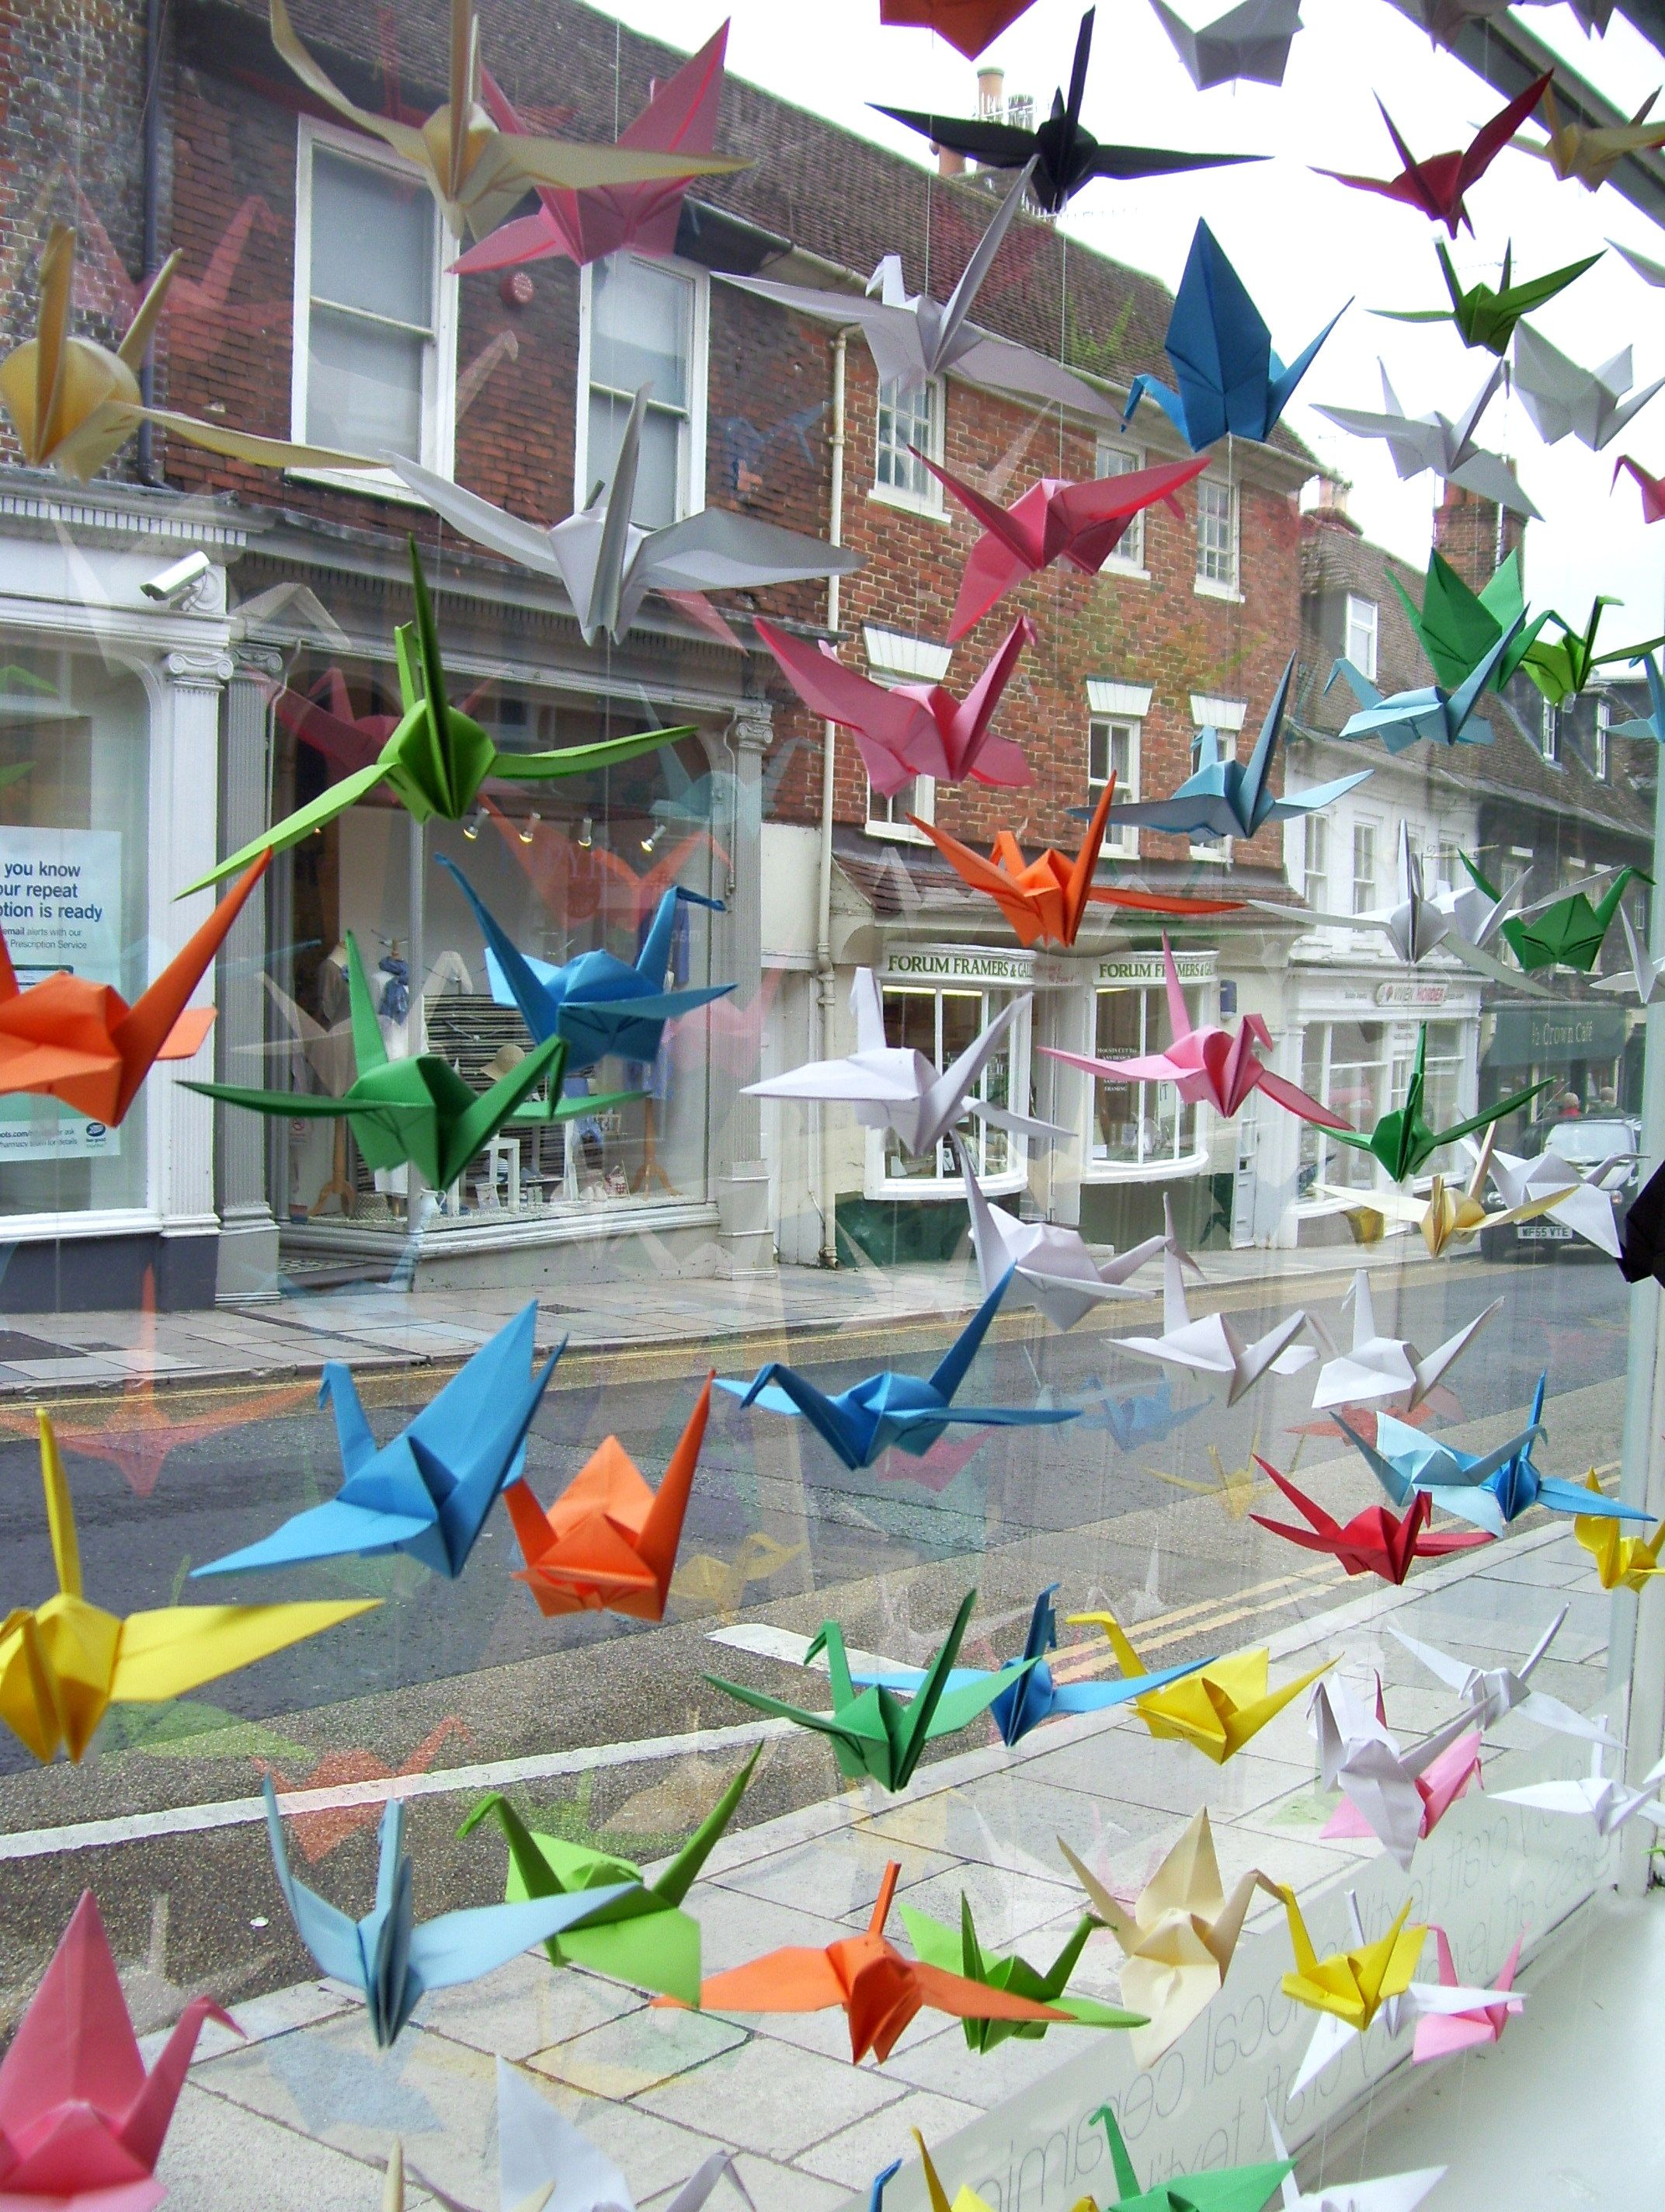 Origami crane crane origami craft ideas - Origami Crane Window Display At Hawthorn Craft Haha Did That Been There Years Ago